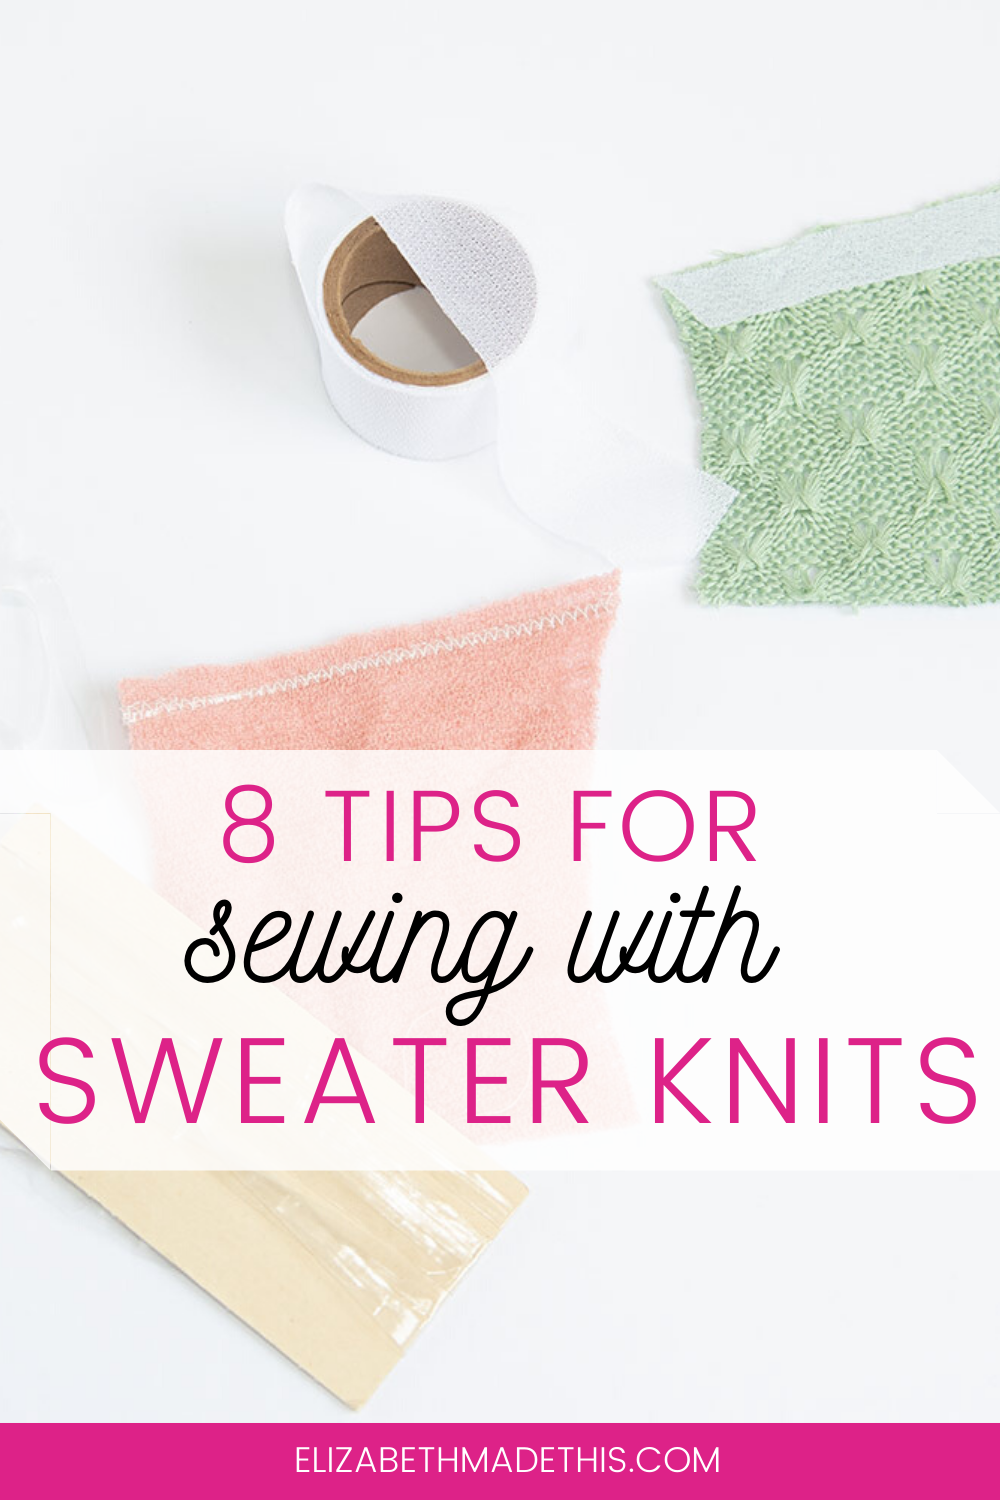 8 tips for sewing with sweater knits to keep you toasty